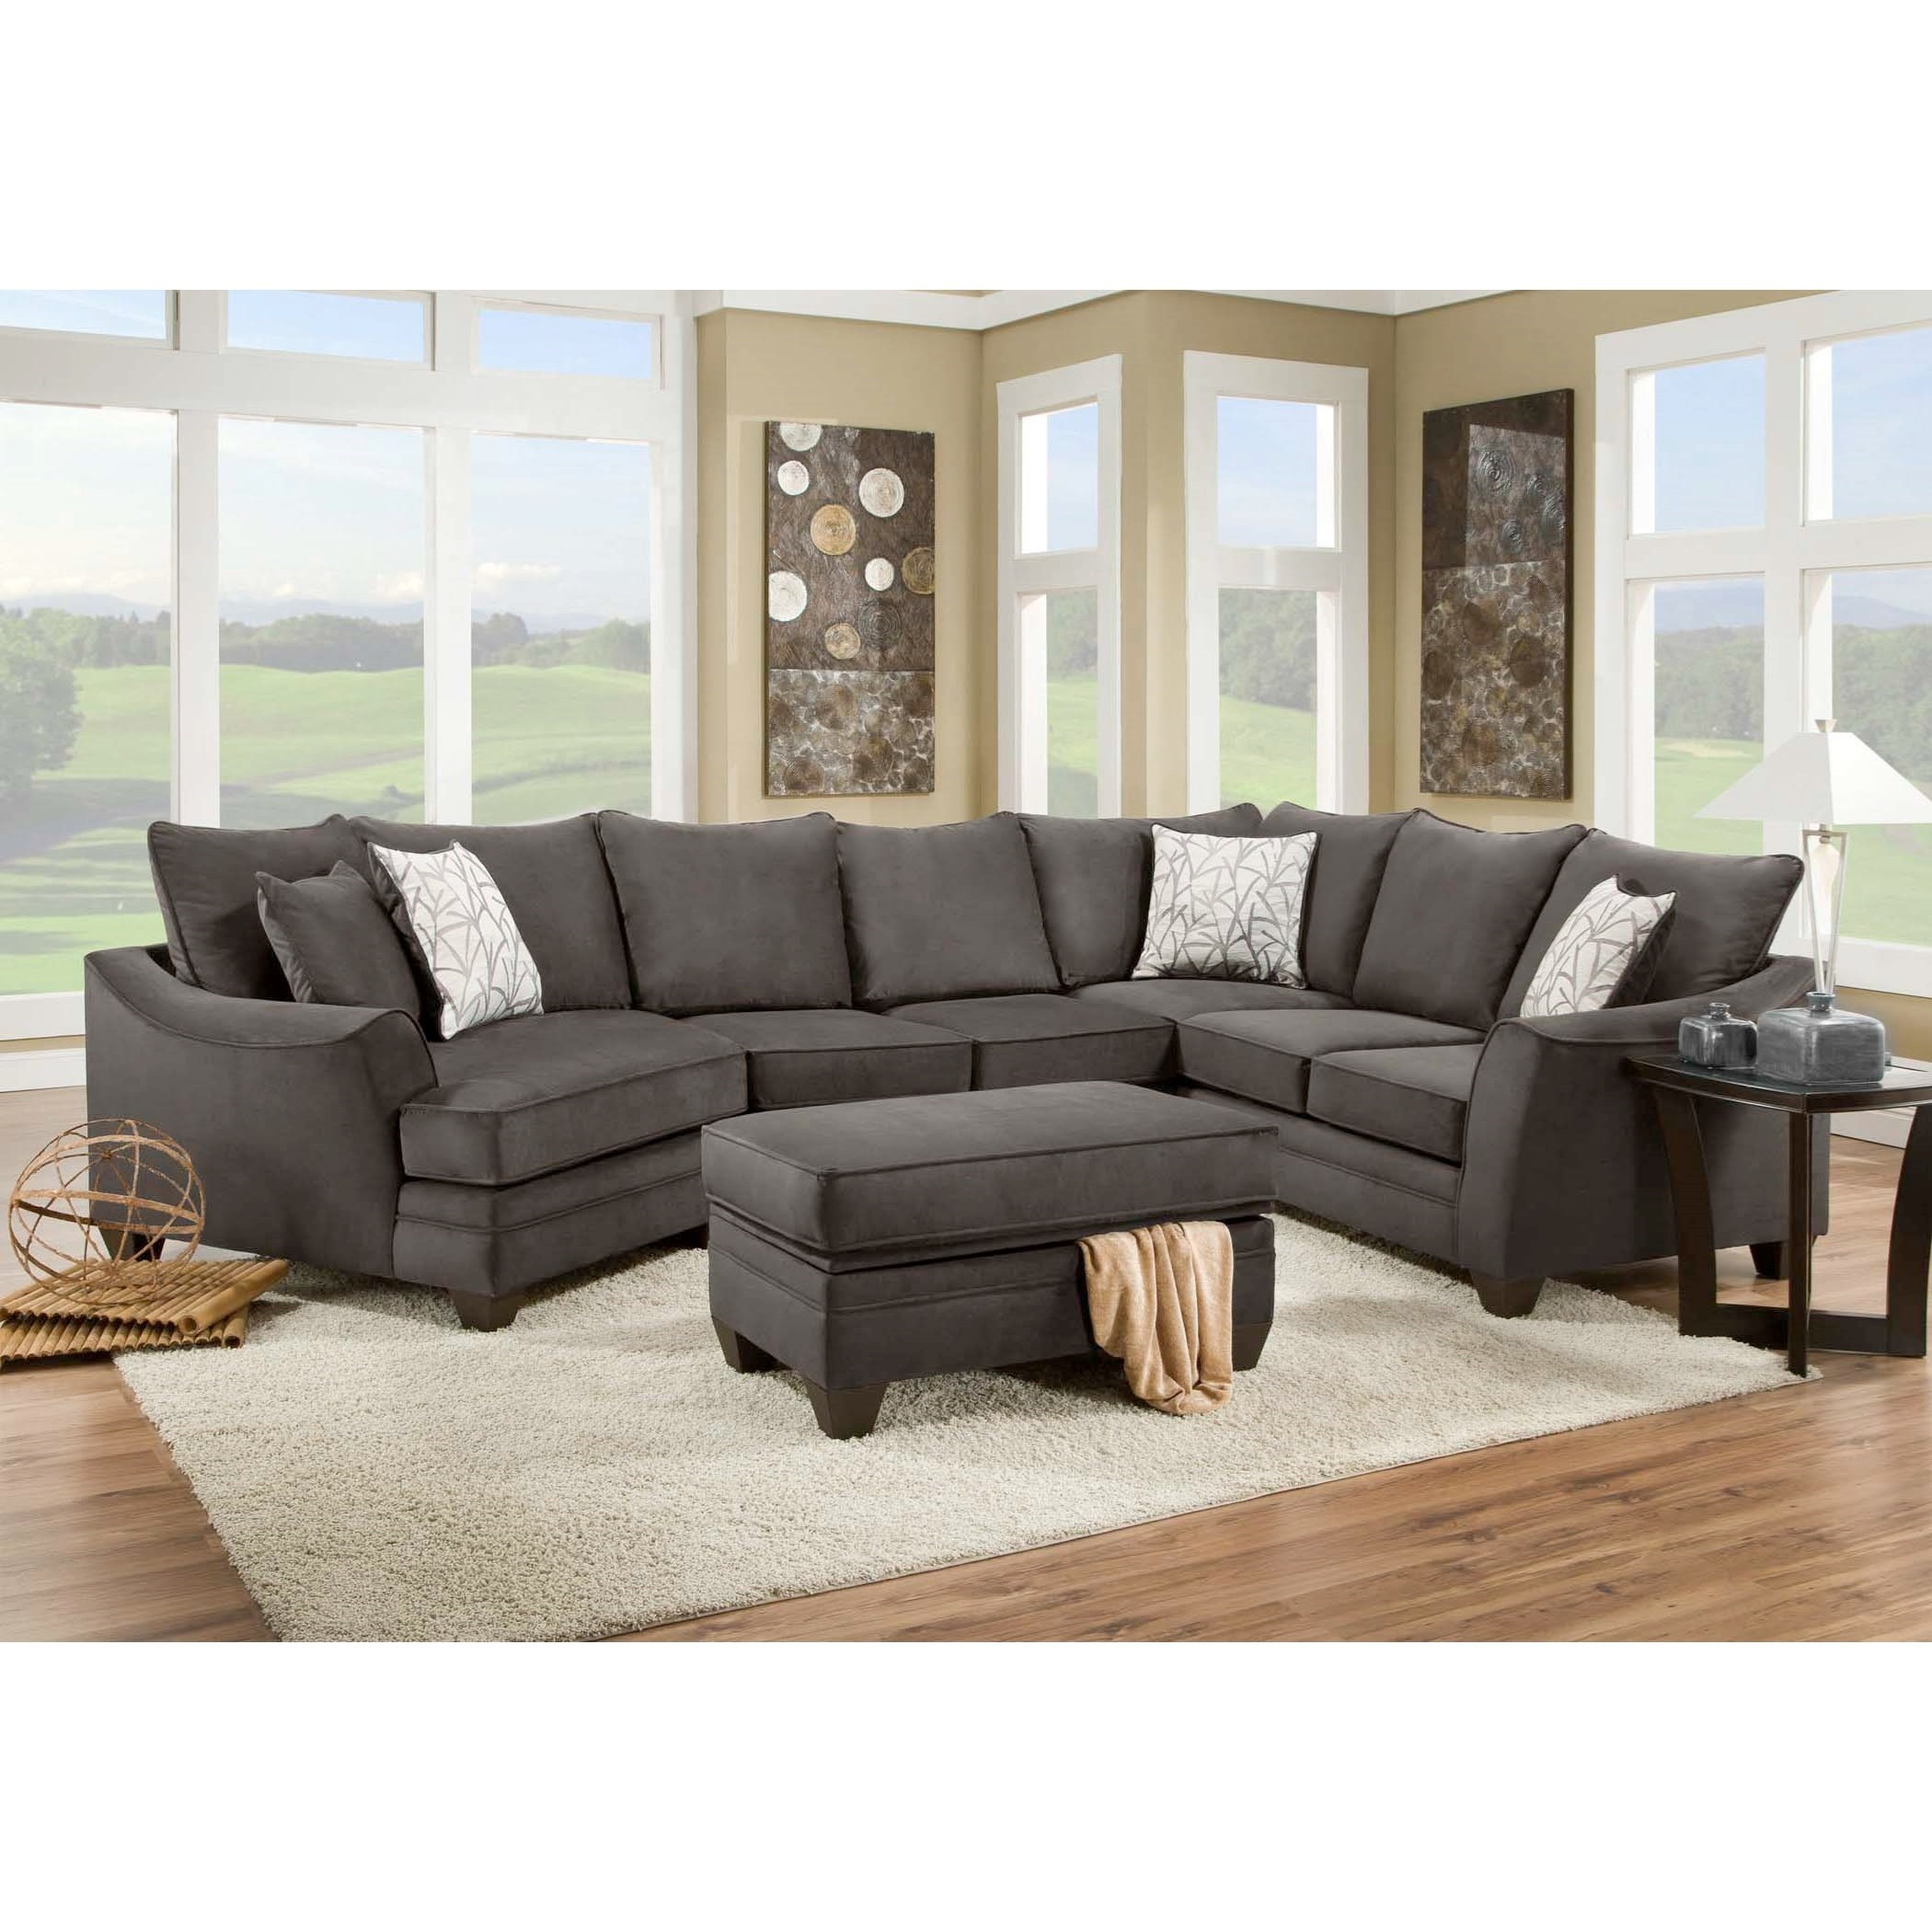 Vendor 610 3810 3814 3822 3840 4040 Sectional Sofa That Seats 5 With Left Side Cuddler Becker Furniture Sectional Sofas